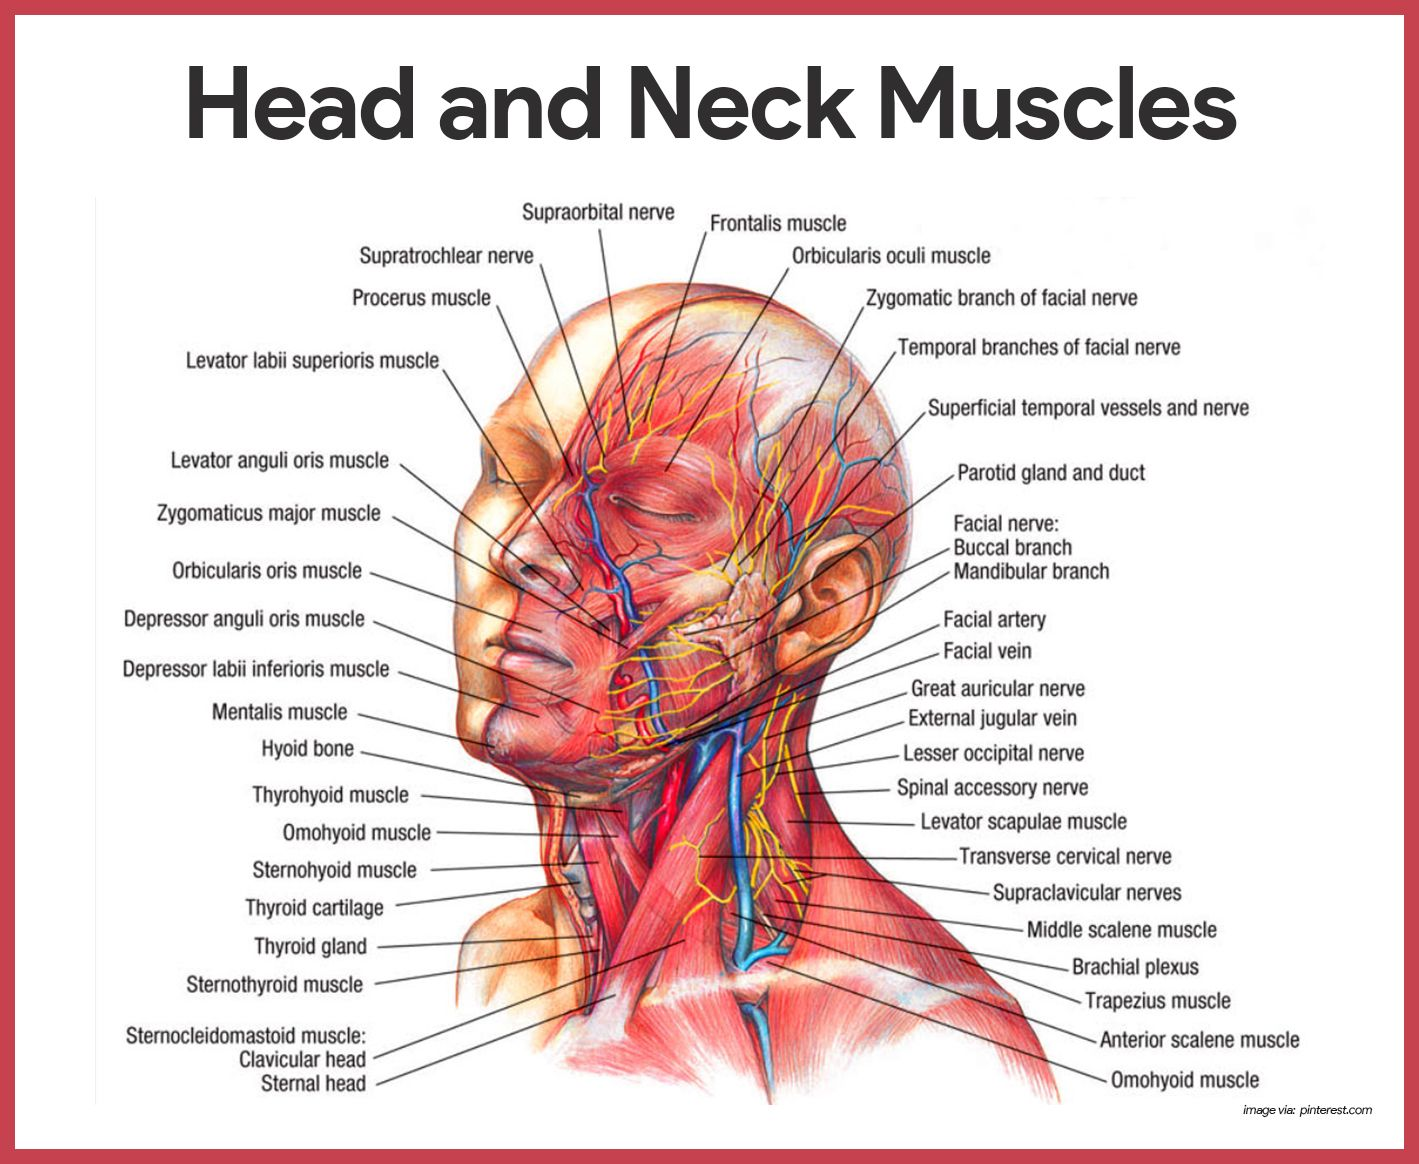 Muscular System Anatomy and Physiology | Pinterest | Muscular system ...